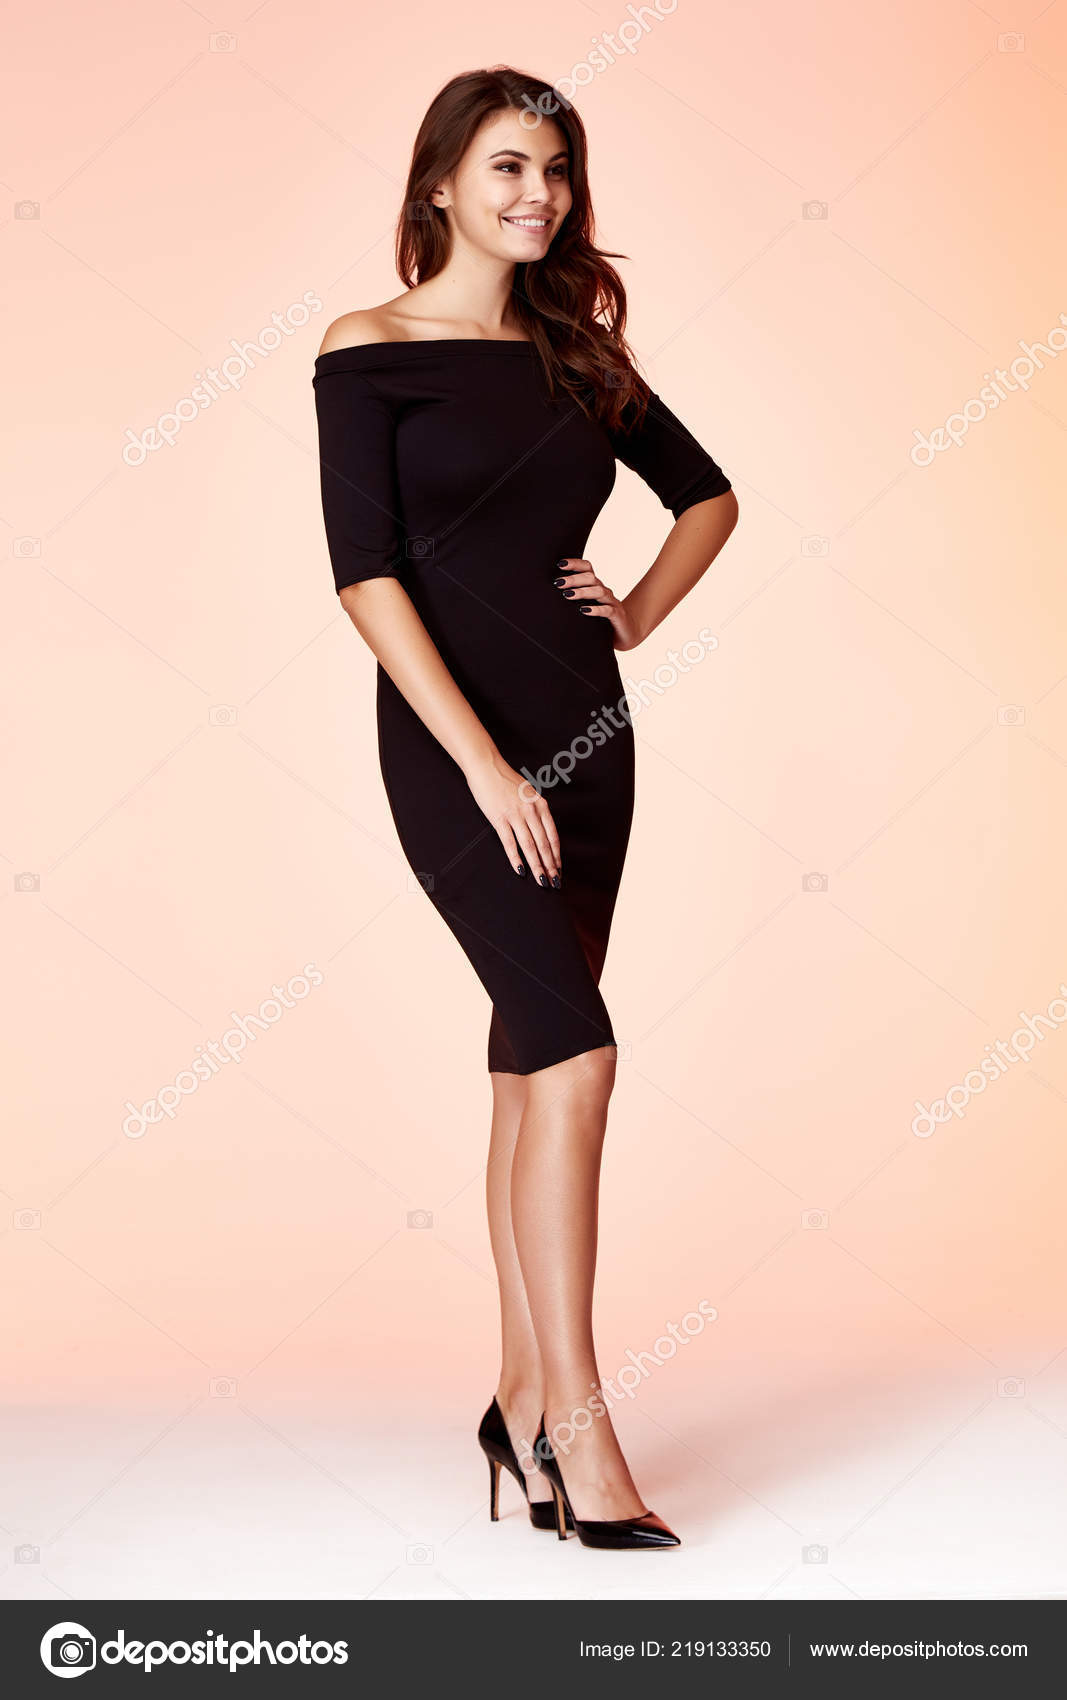 7a572a4731de0 Beauty woman model wear stylish design trend clothing black skinny dress  casual formal office style for work meeting walk party brunette hair makeup  party ...